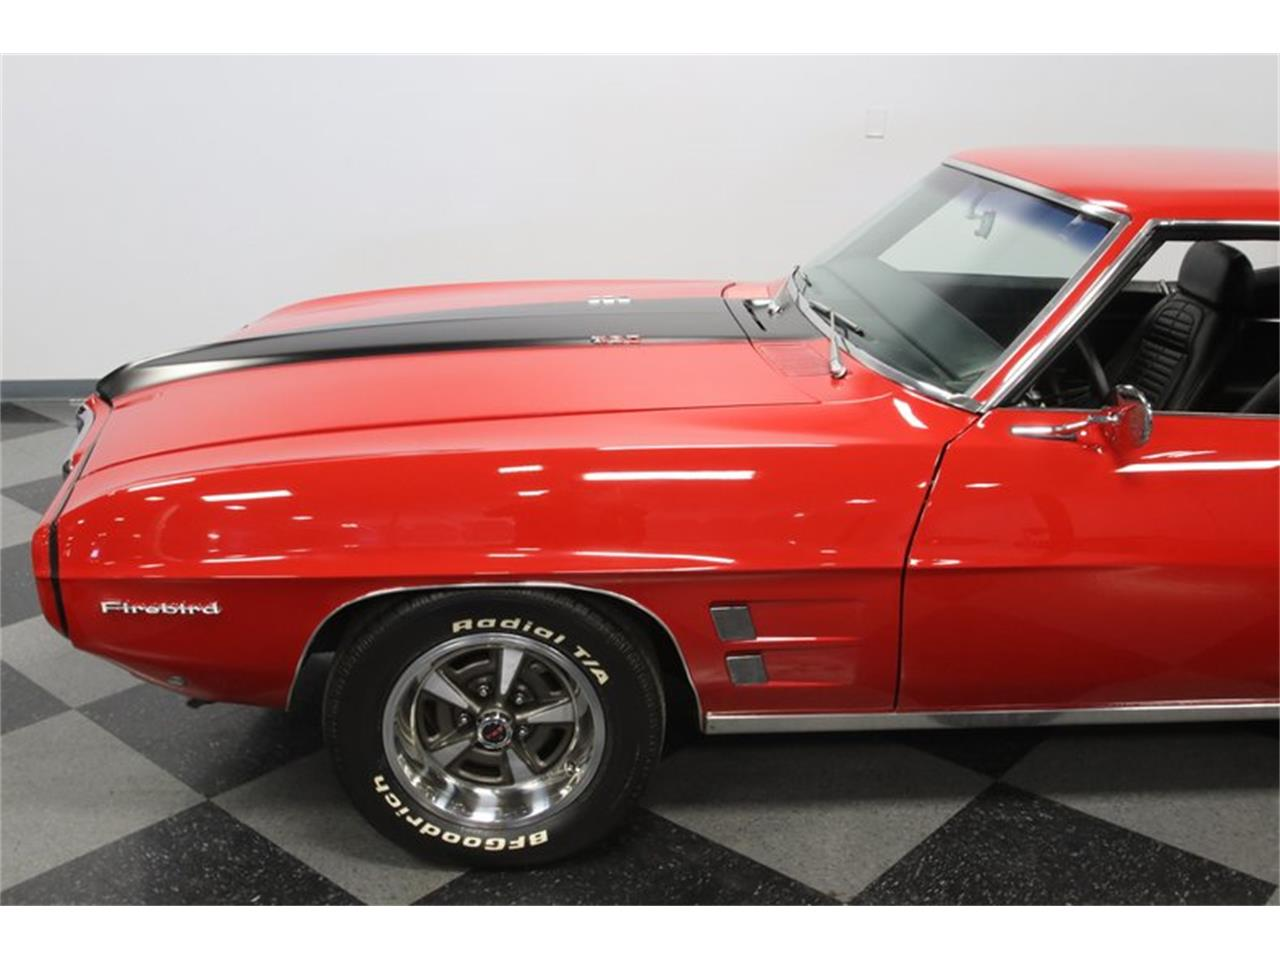 Large Picture of '69 Firebird located in North Carolina - $28,995.00 Offered by Streetside Classics - Charlotte - PVY7